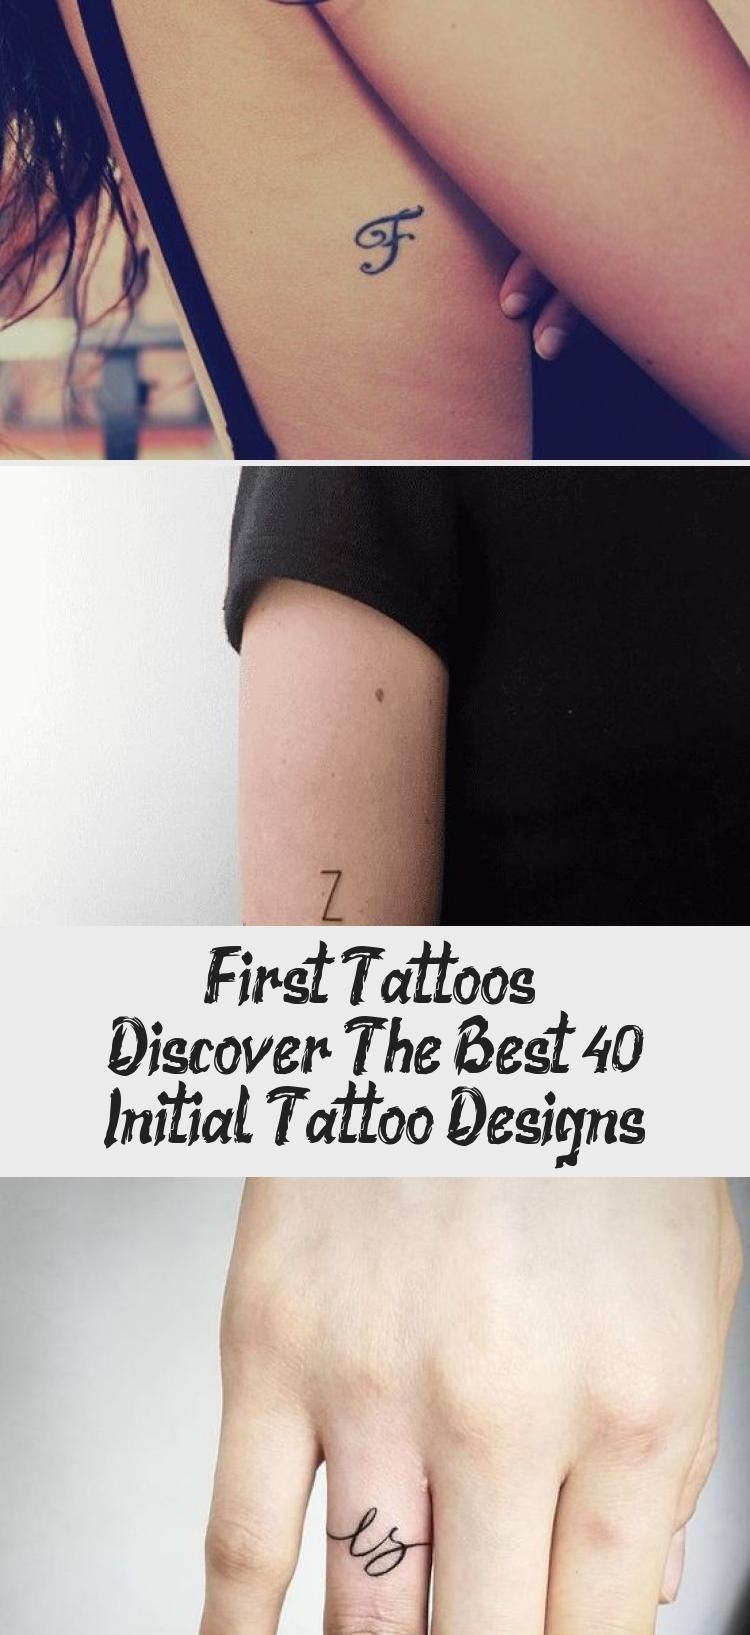 Photo of First tattoos – Discover the best 40+ Initial Tattoo Designs  #designs #discover…